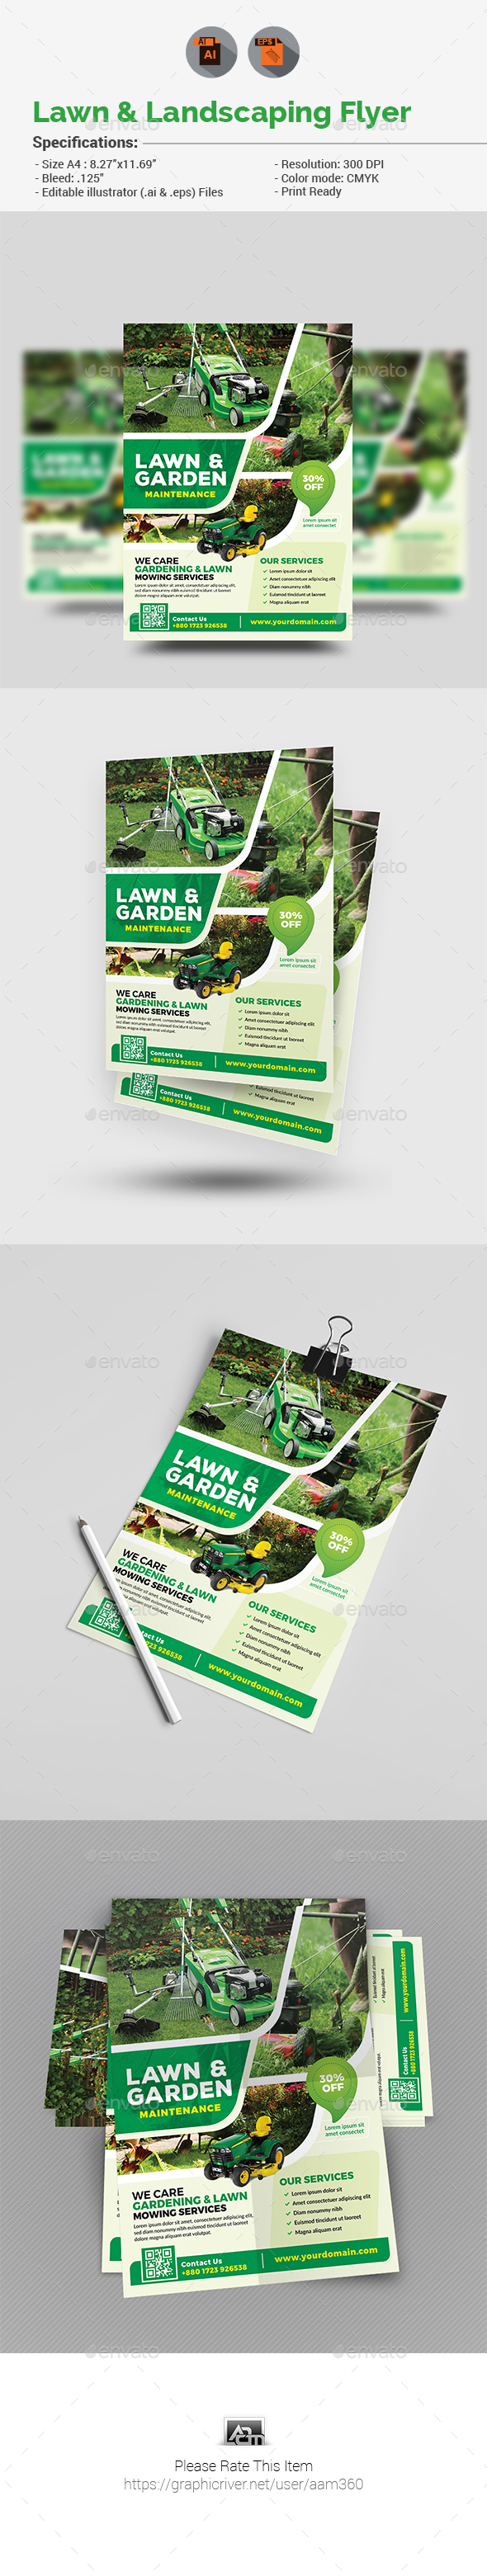 Lawn & Landscaping Flyer - Corporate Flyers